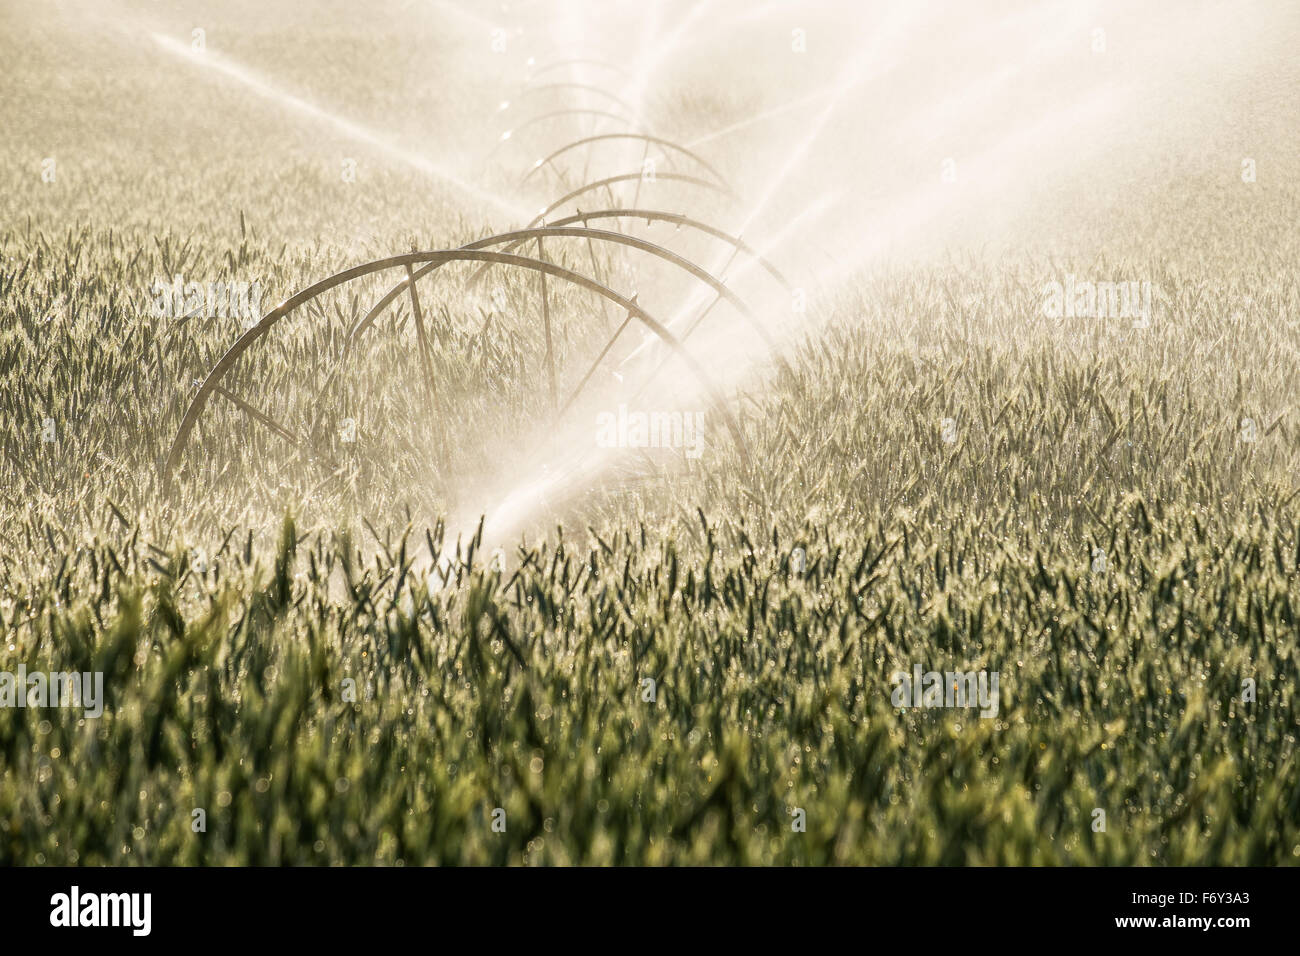 The early morning sun shines on a wheat field as it's being watered. - Stock Image